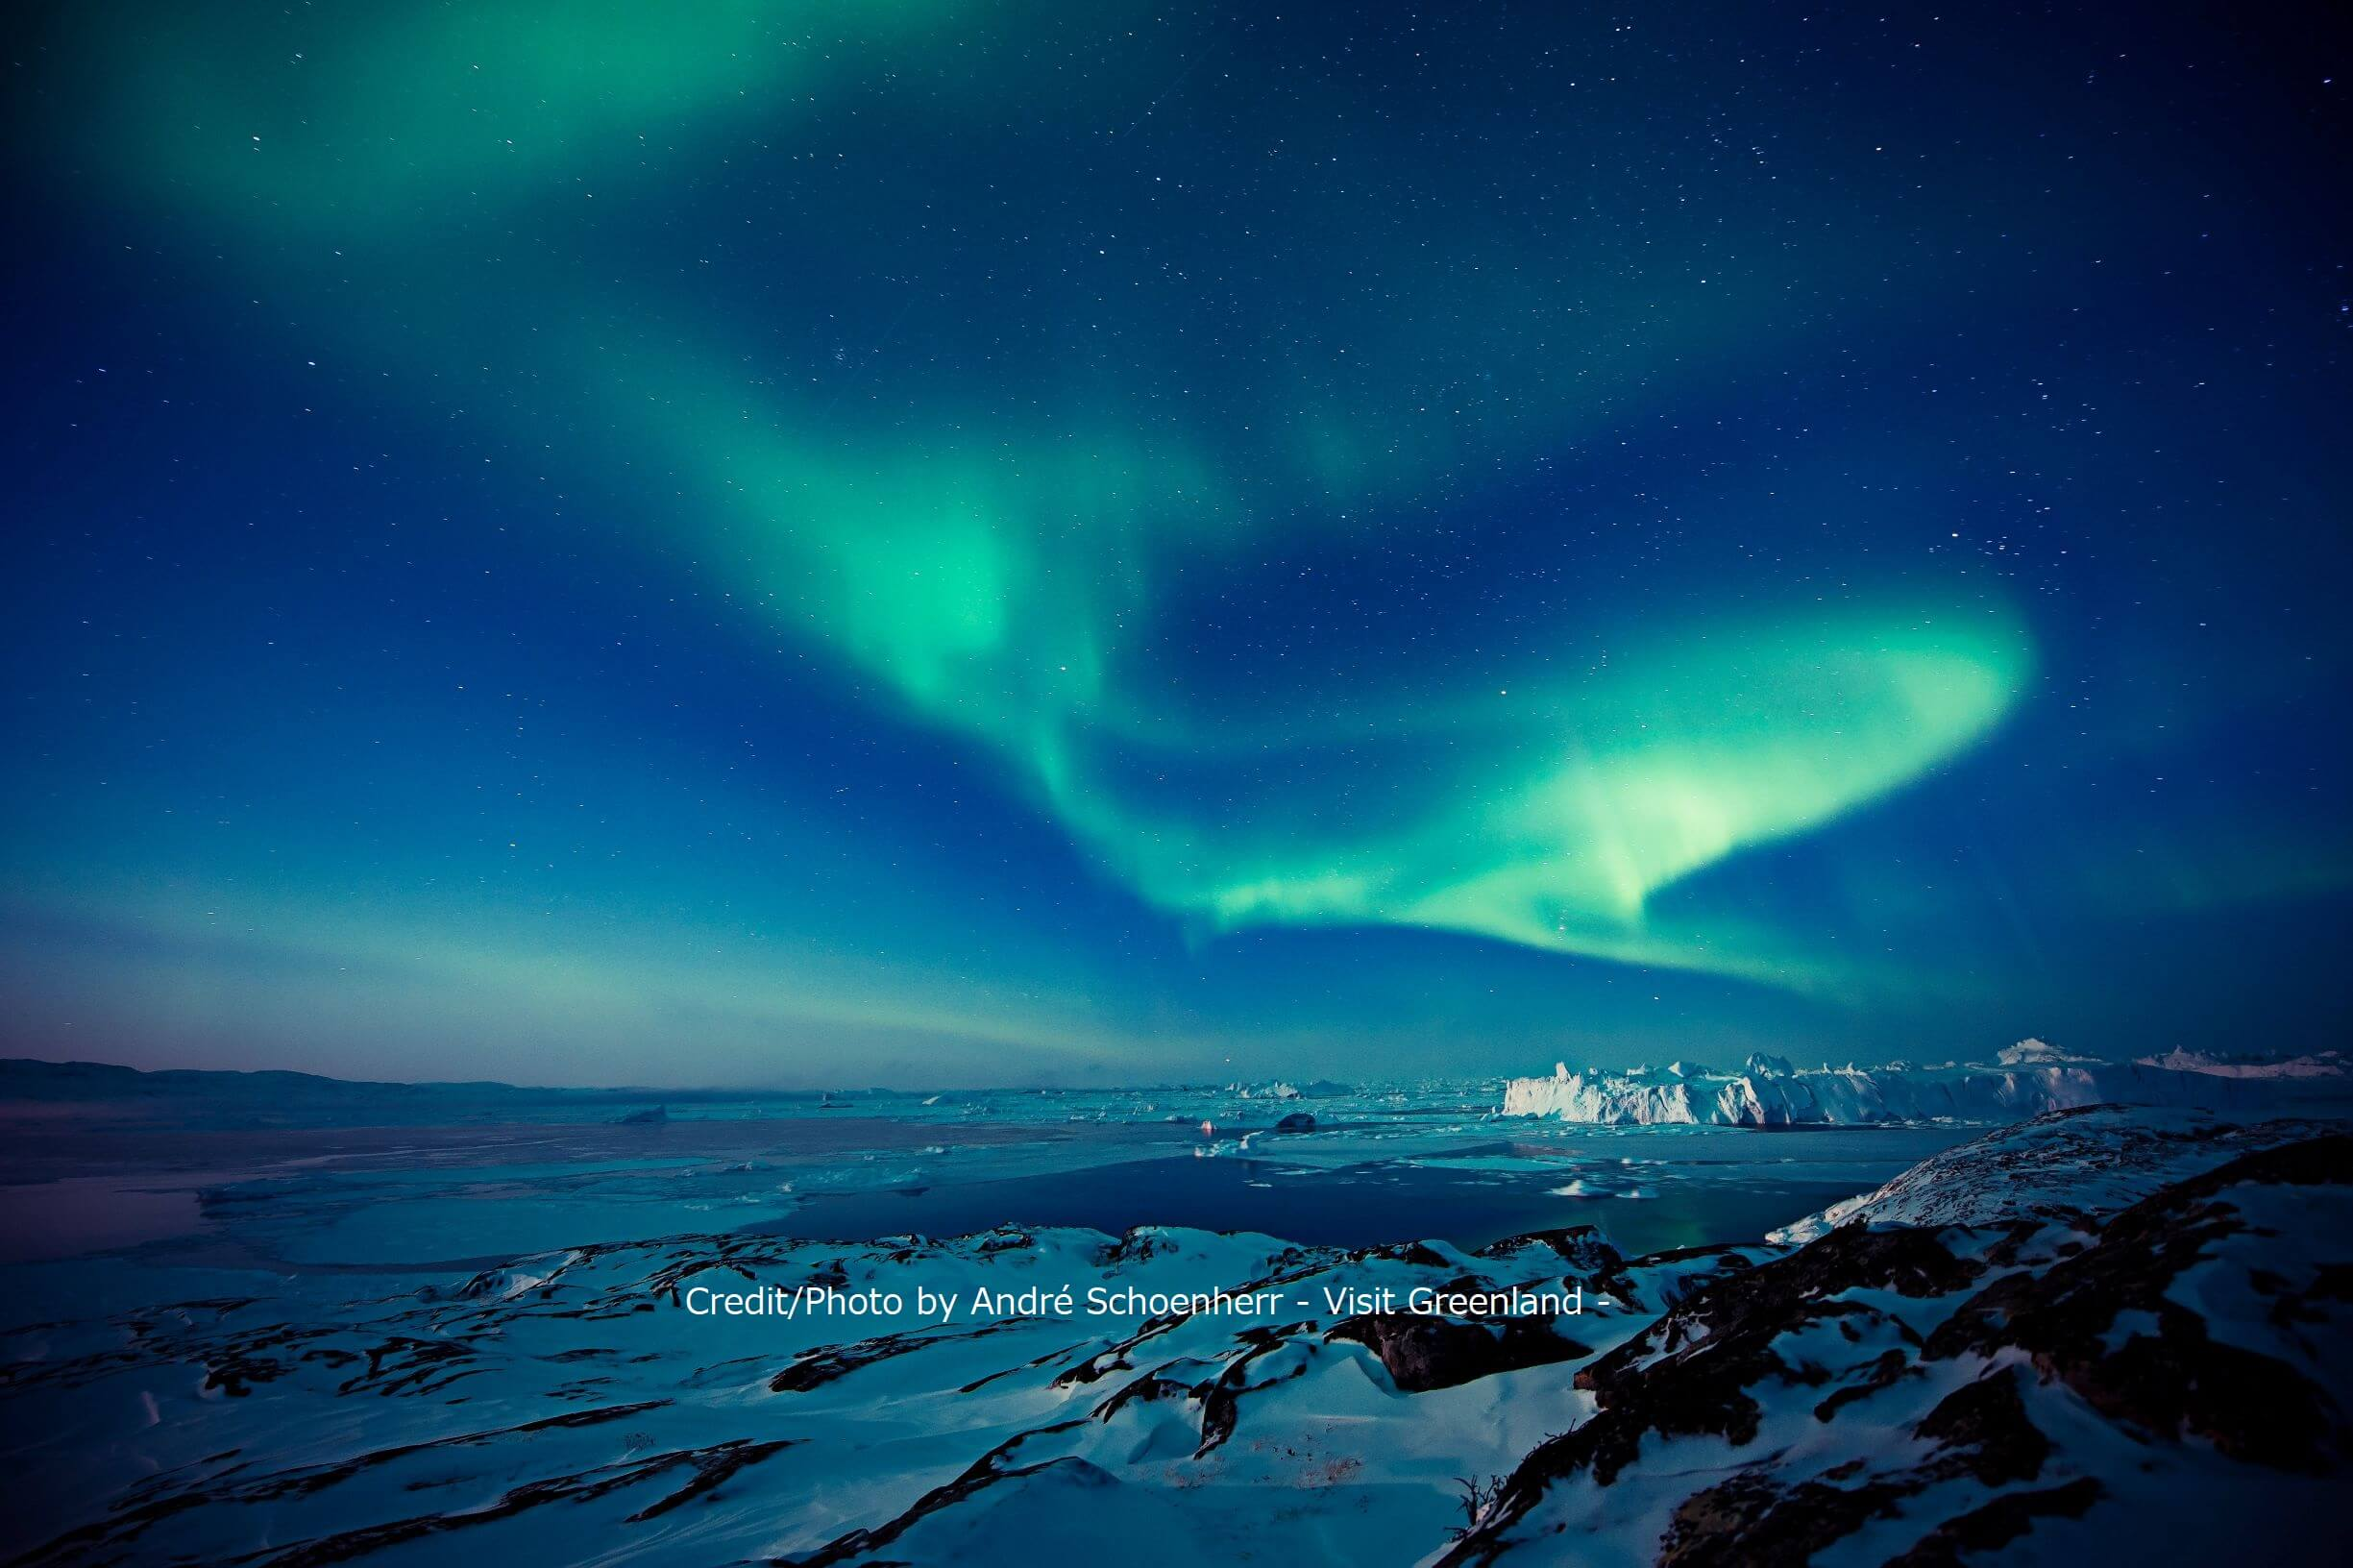 Northern lights over the Ilulissat Icefjord area in Greenland